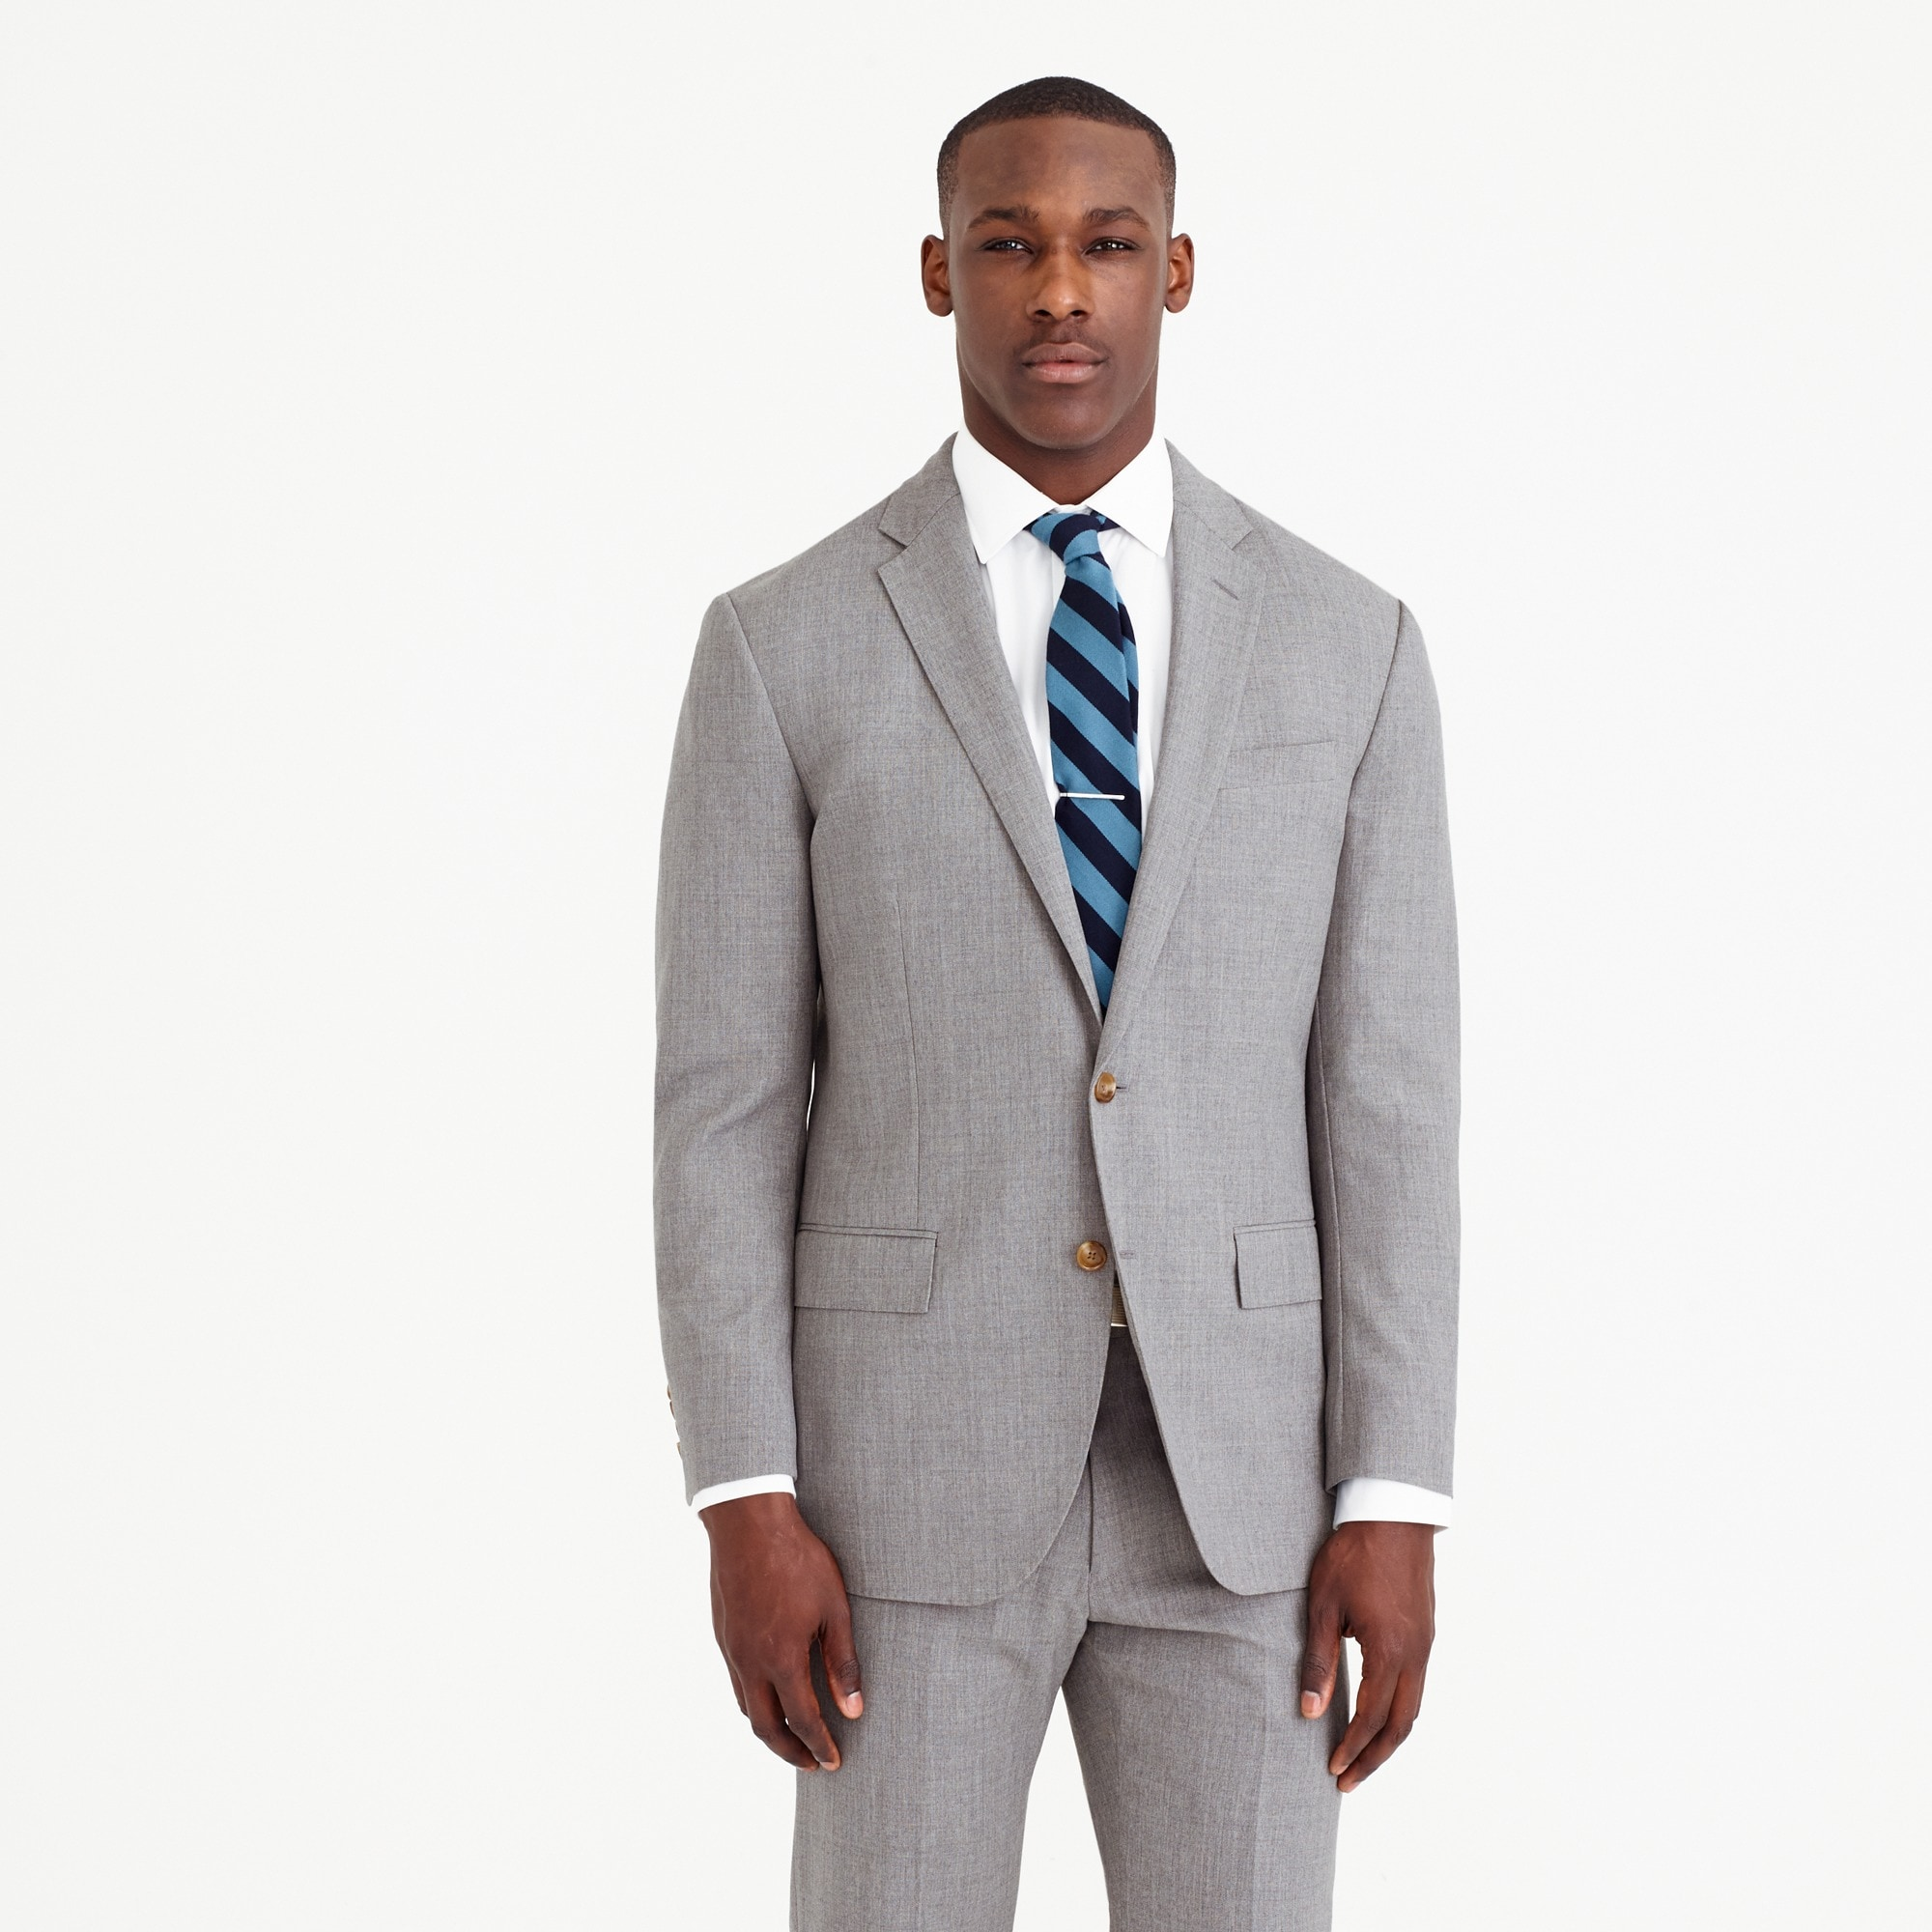 Crosby Traveler suit jacket in Italian wool